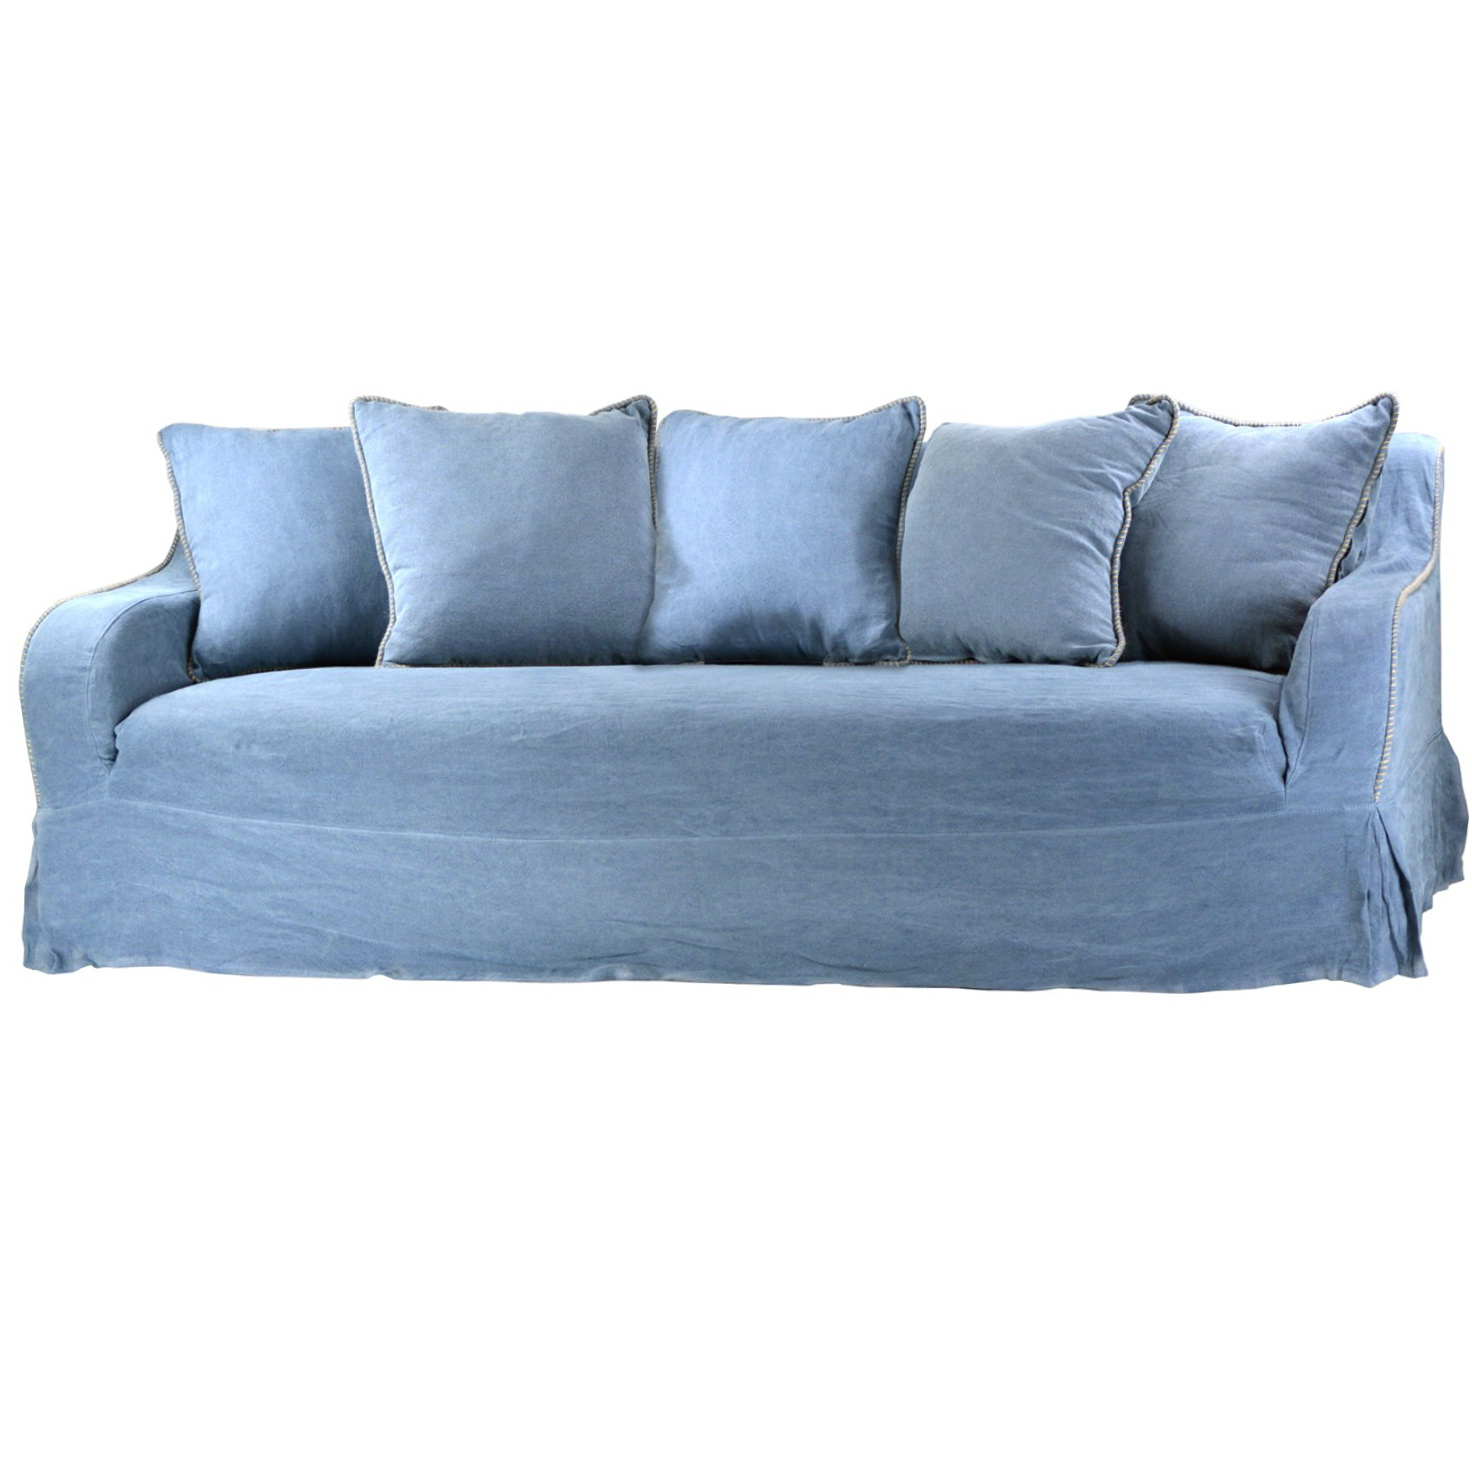 Couch Back Cushions Replacement